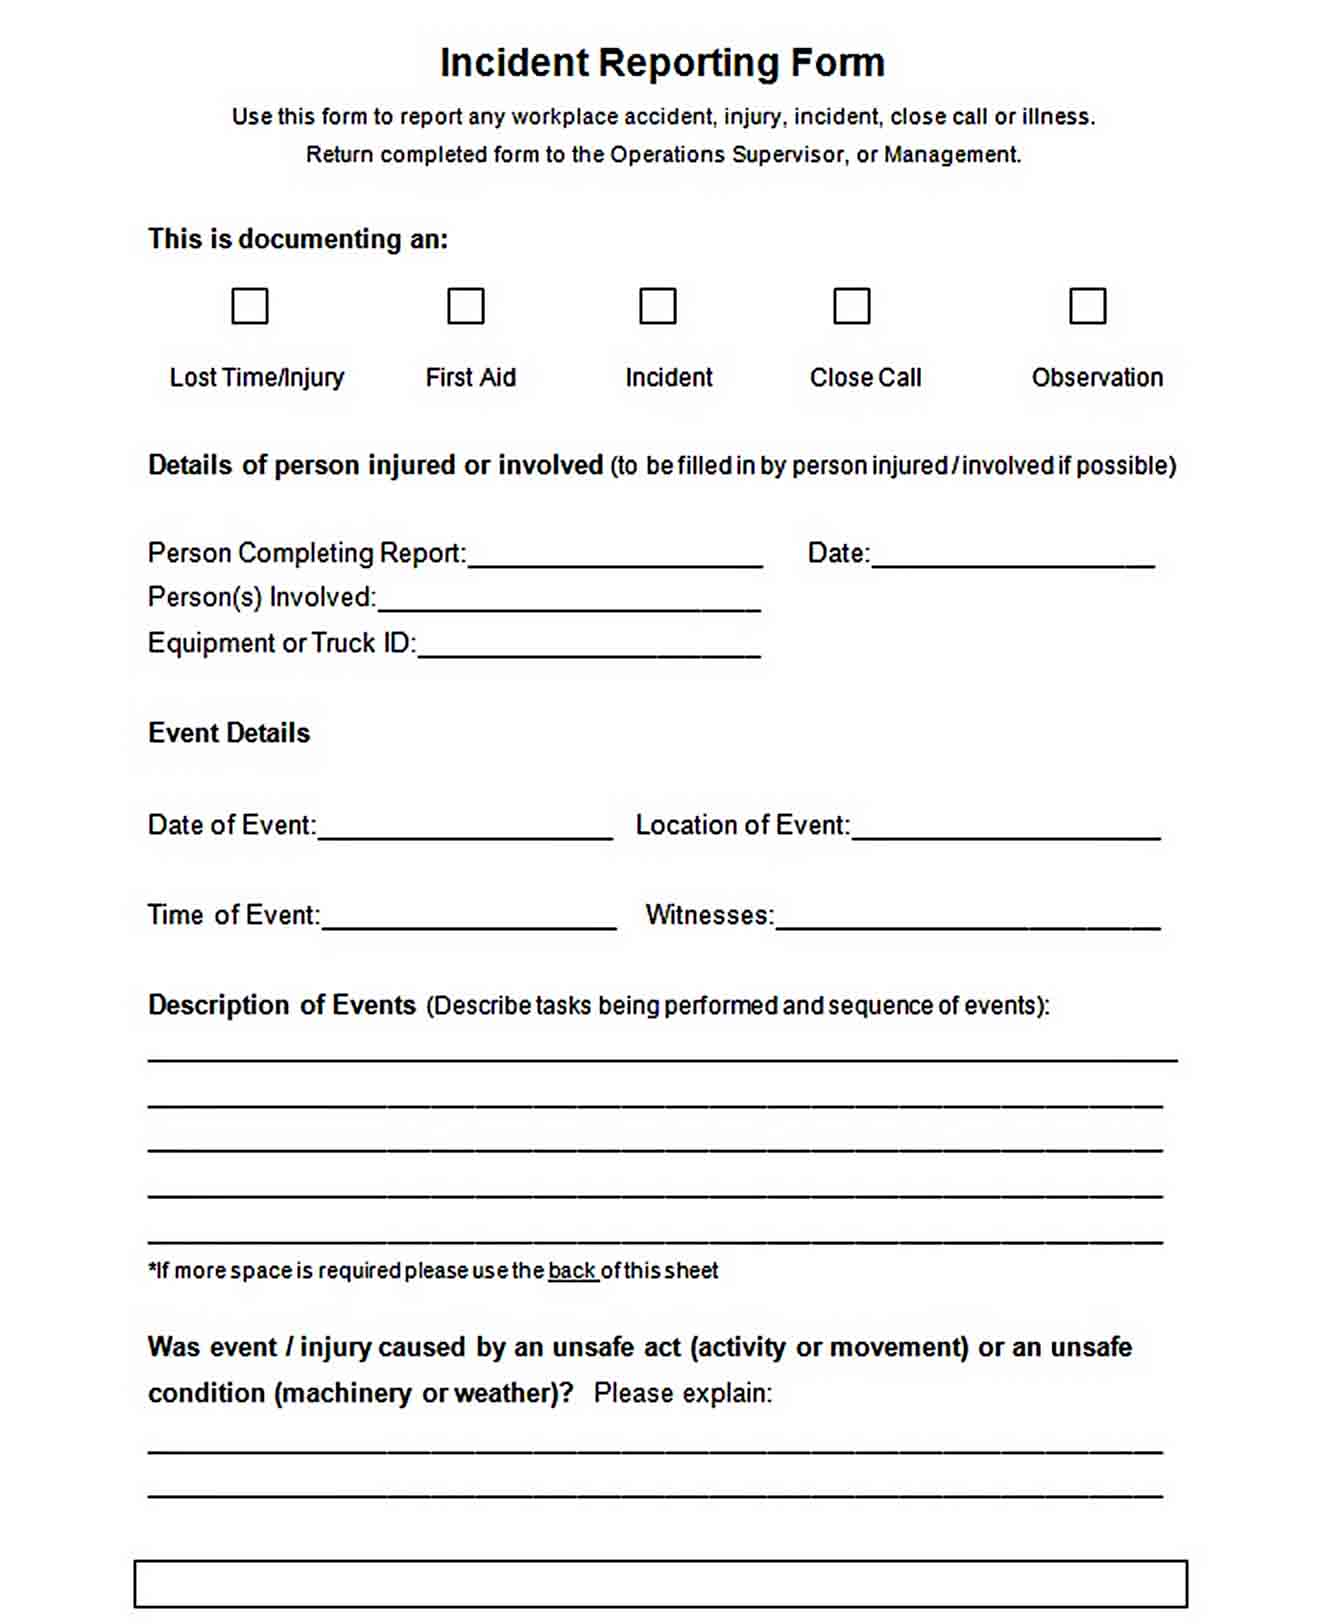 Templates Blank Employee Incident Reporting Form